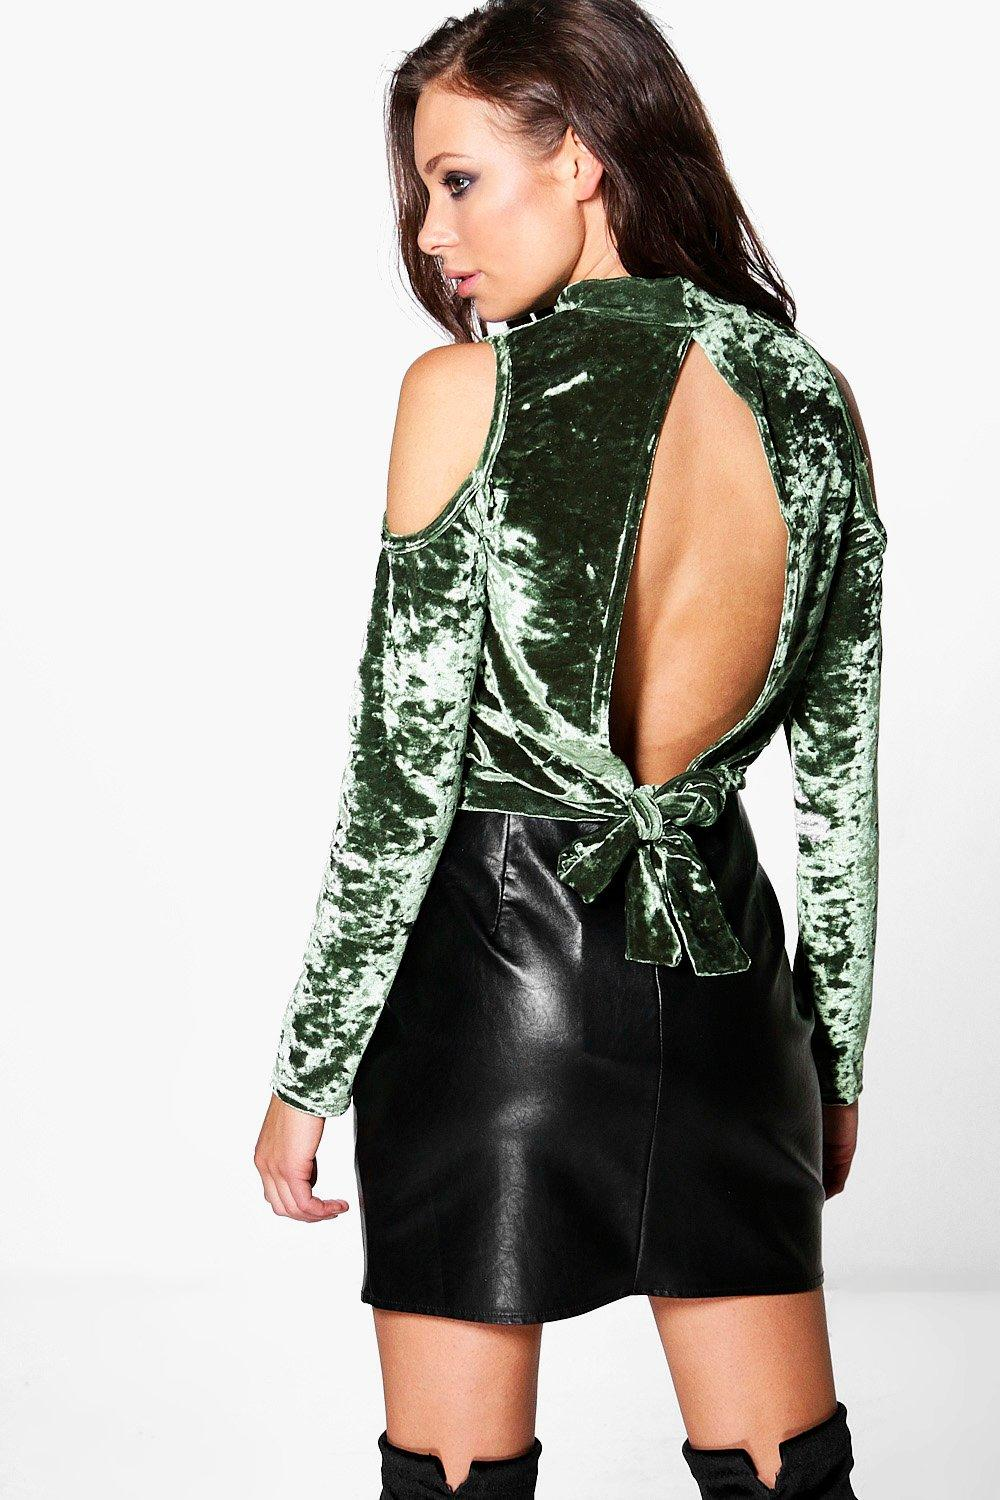 Jenna Crushed Velvet Open Back Crop